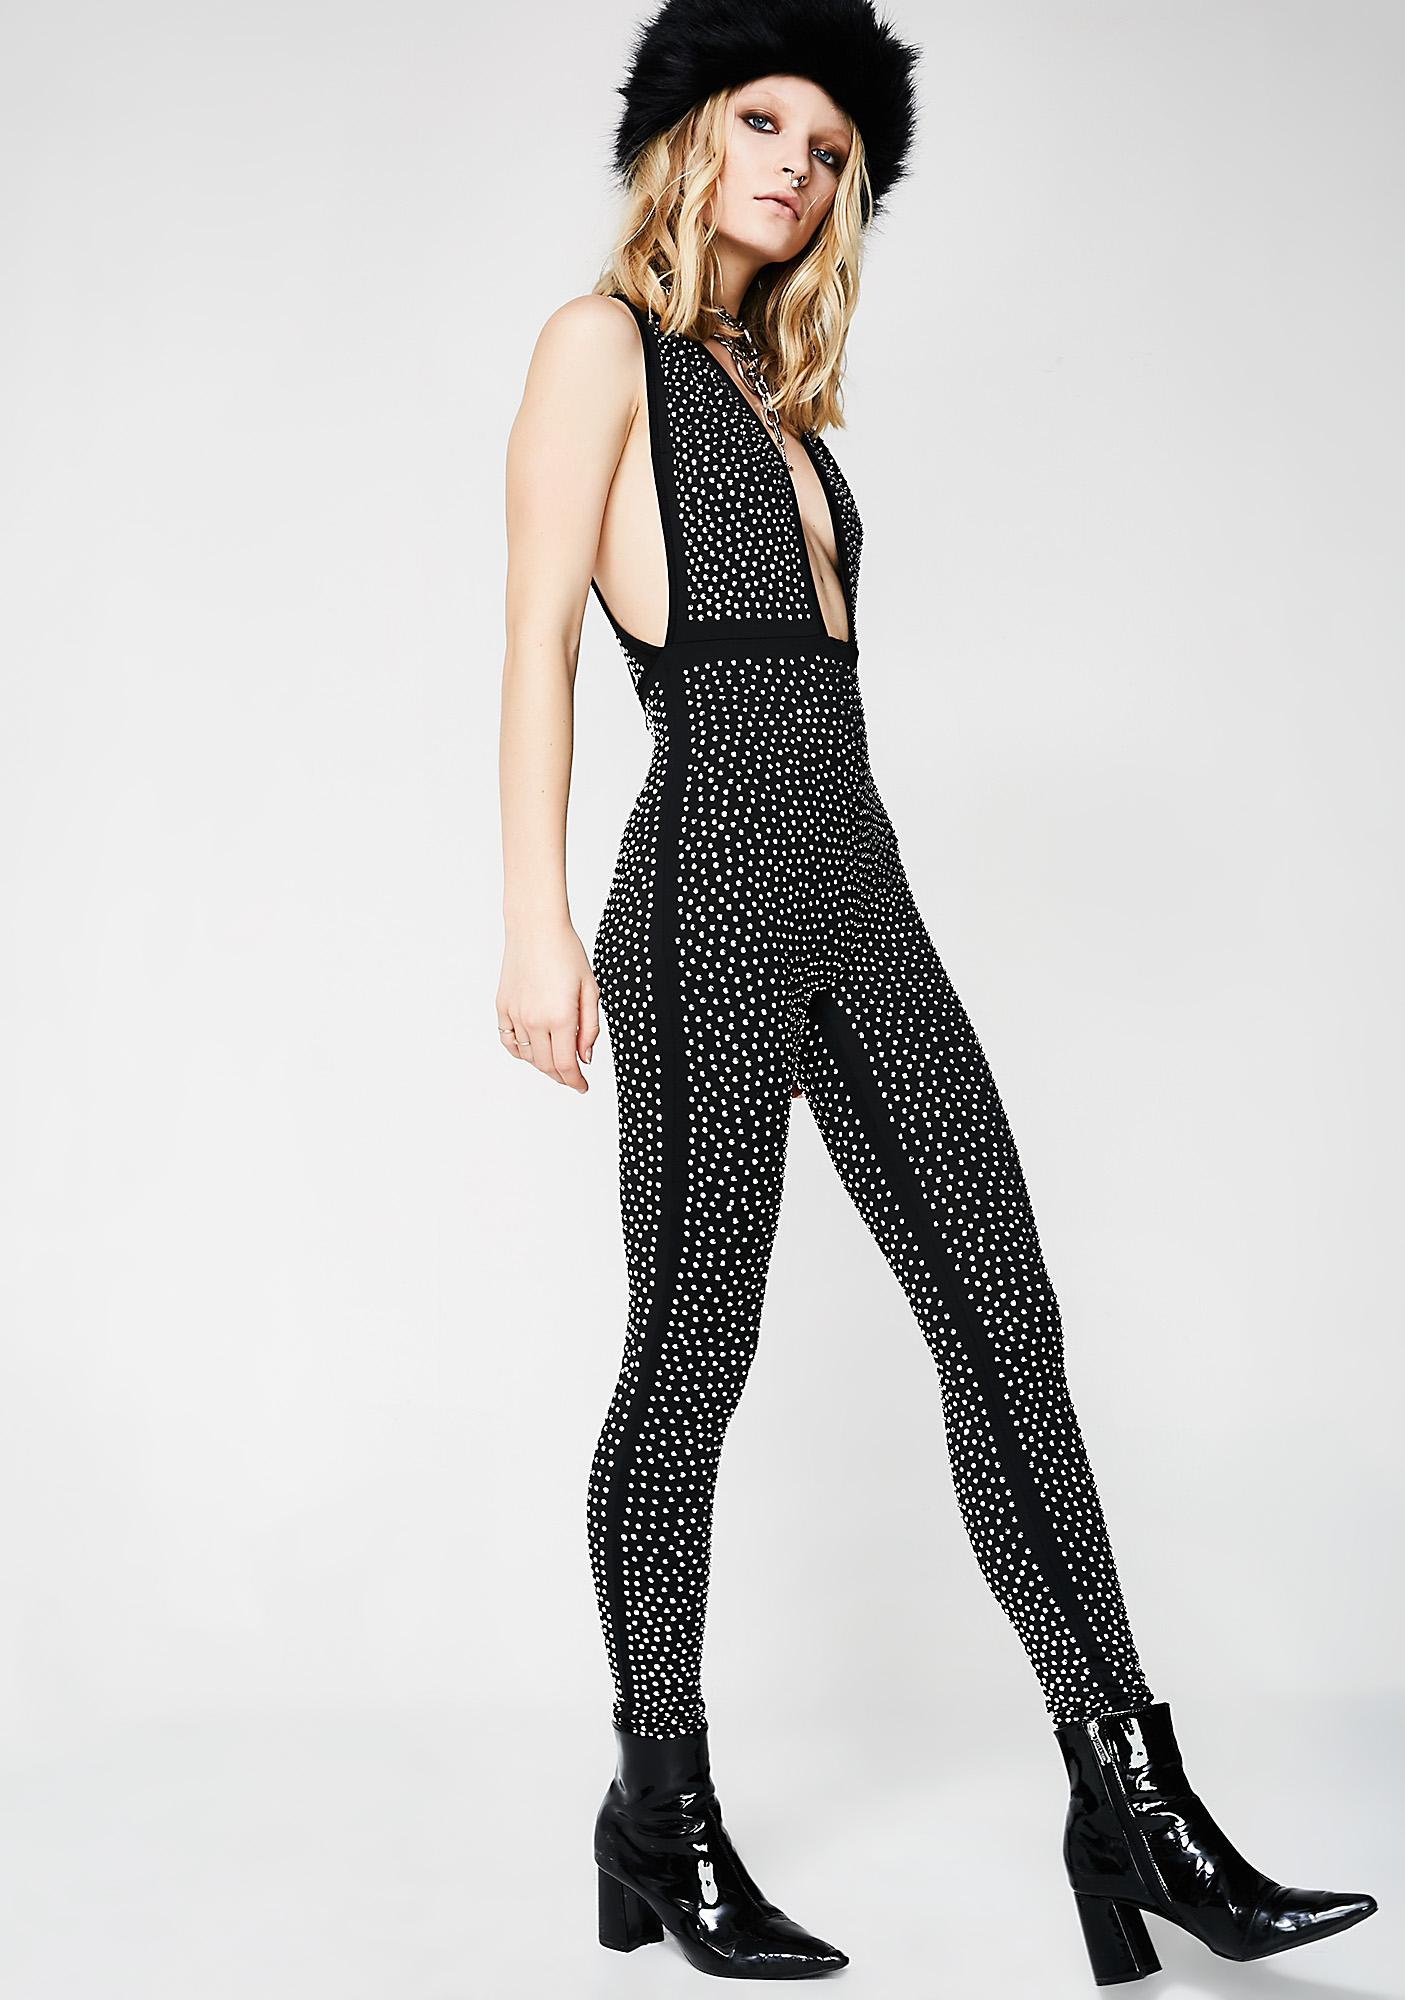 Crush Your Dreams Embellished Catsuit